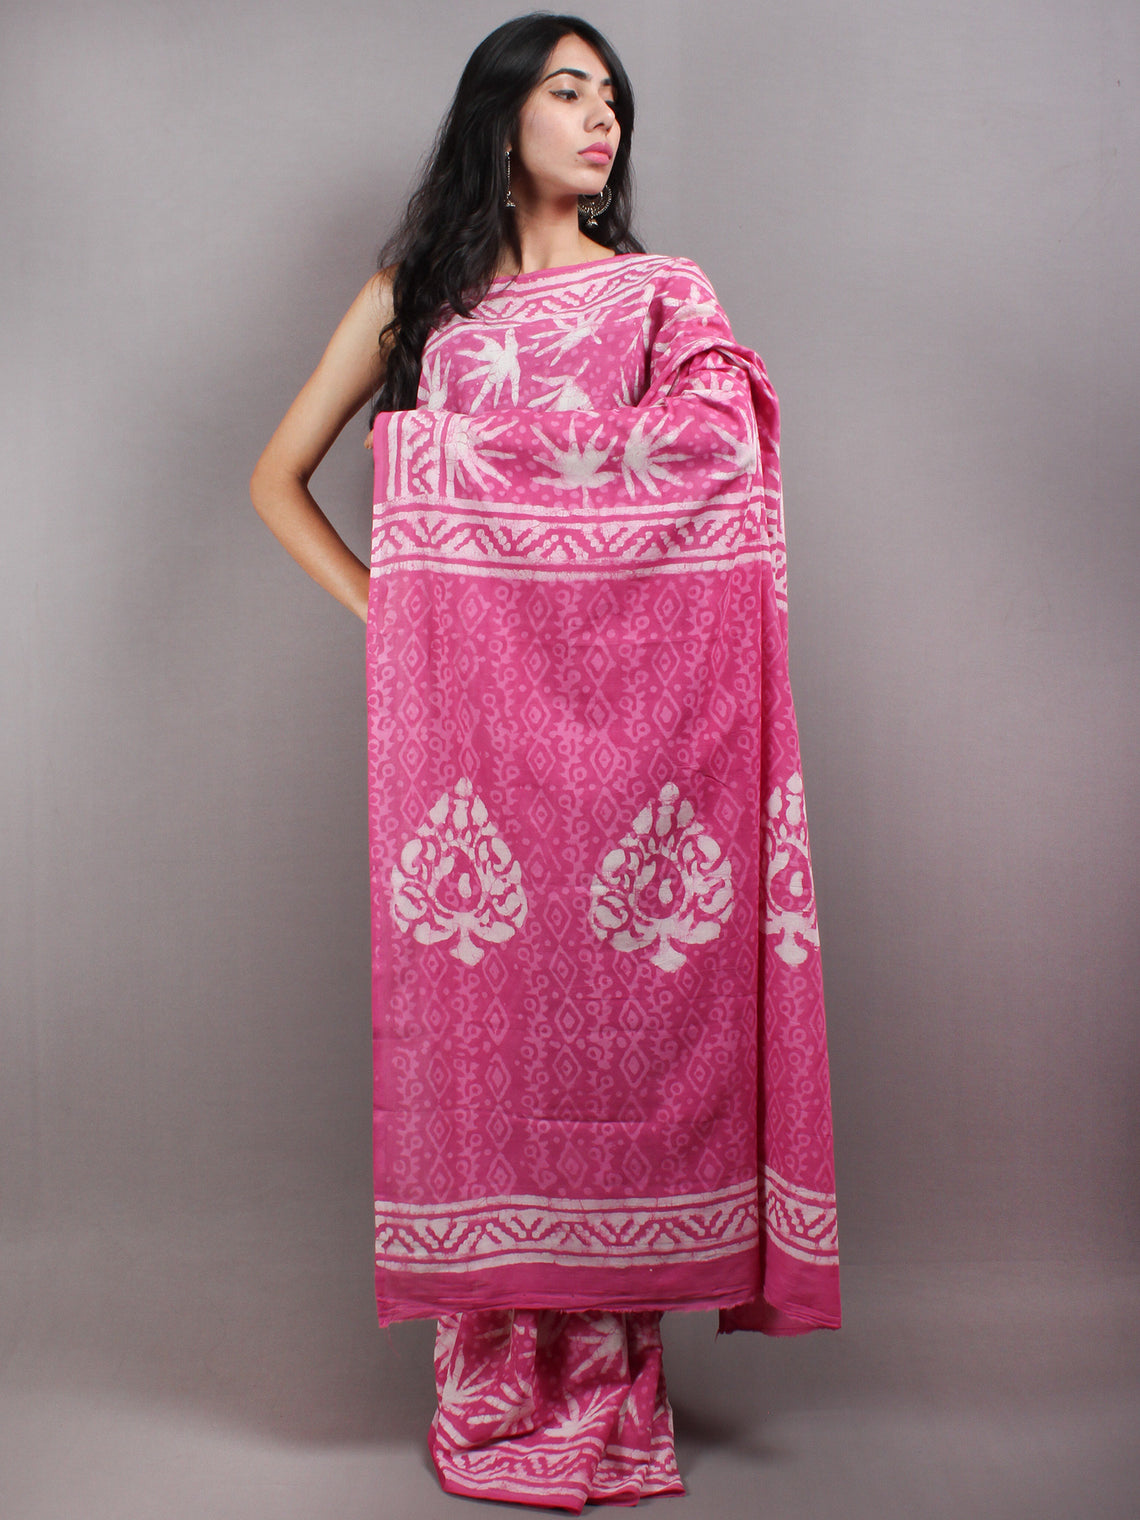 Pink White Hand Block Printed in Natural Colors Cotton Mul Saree - S03170629